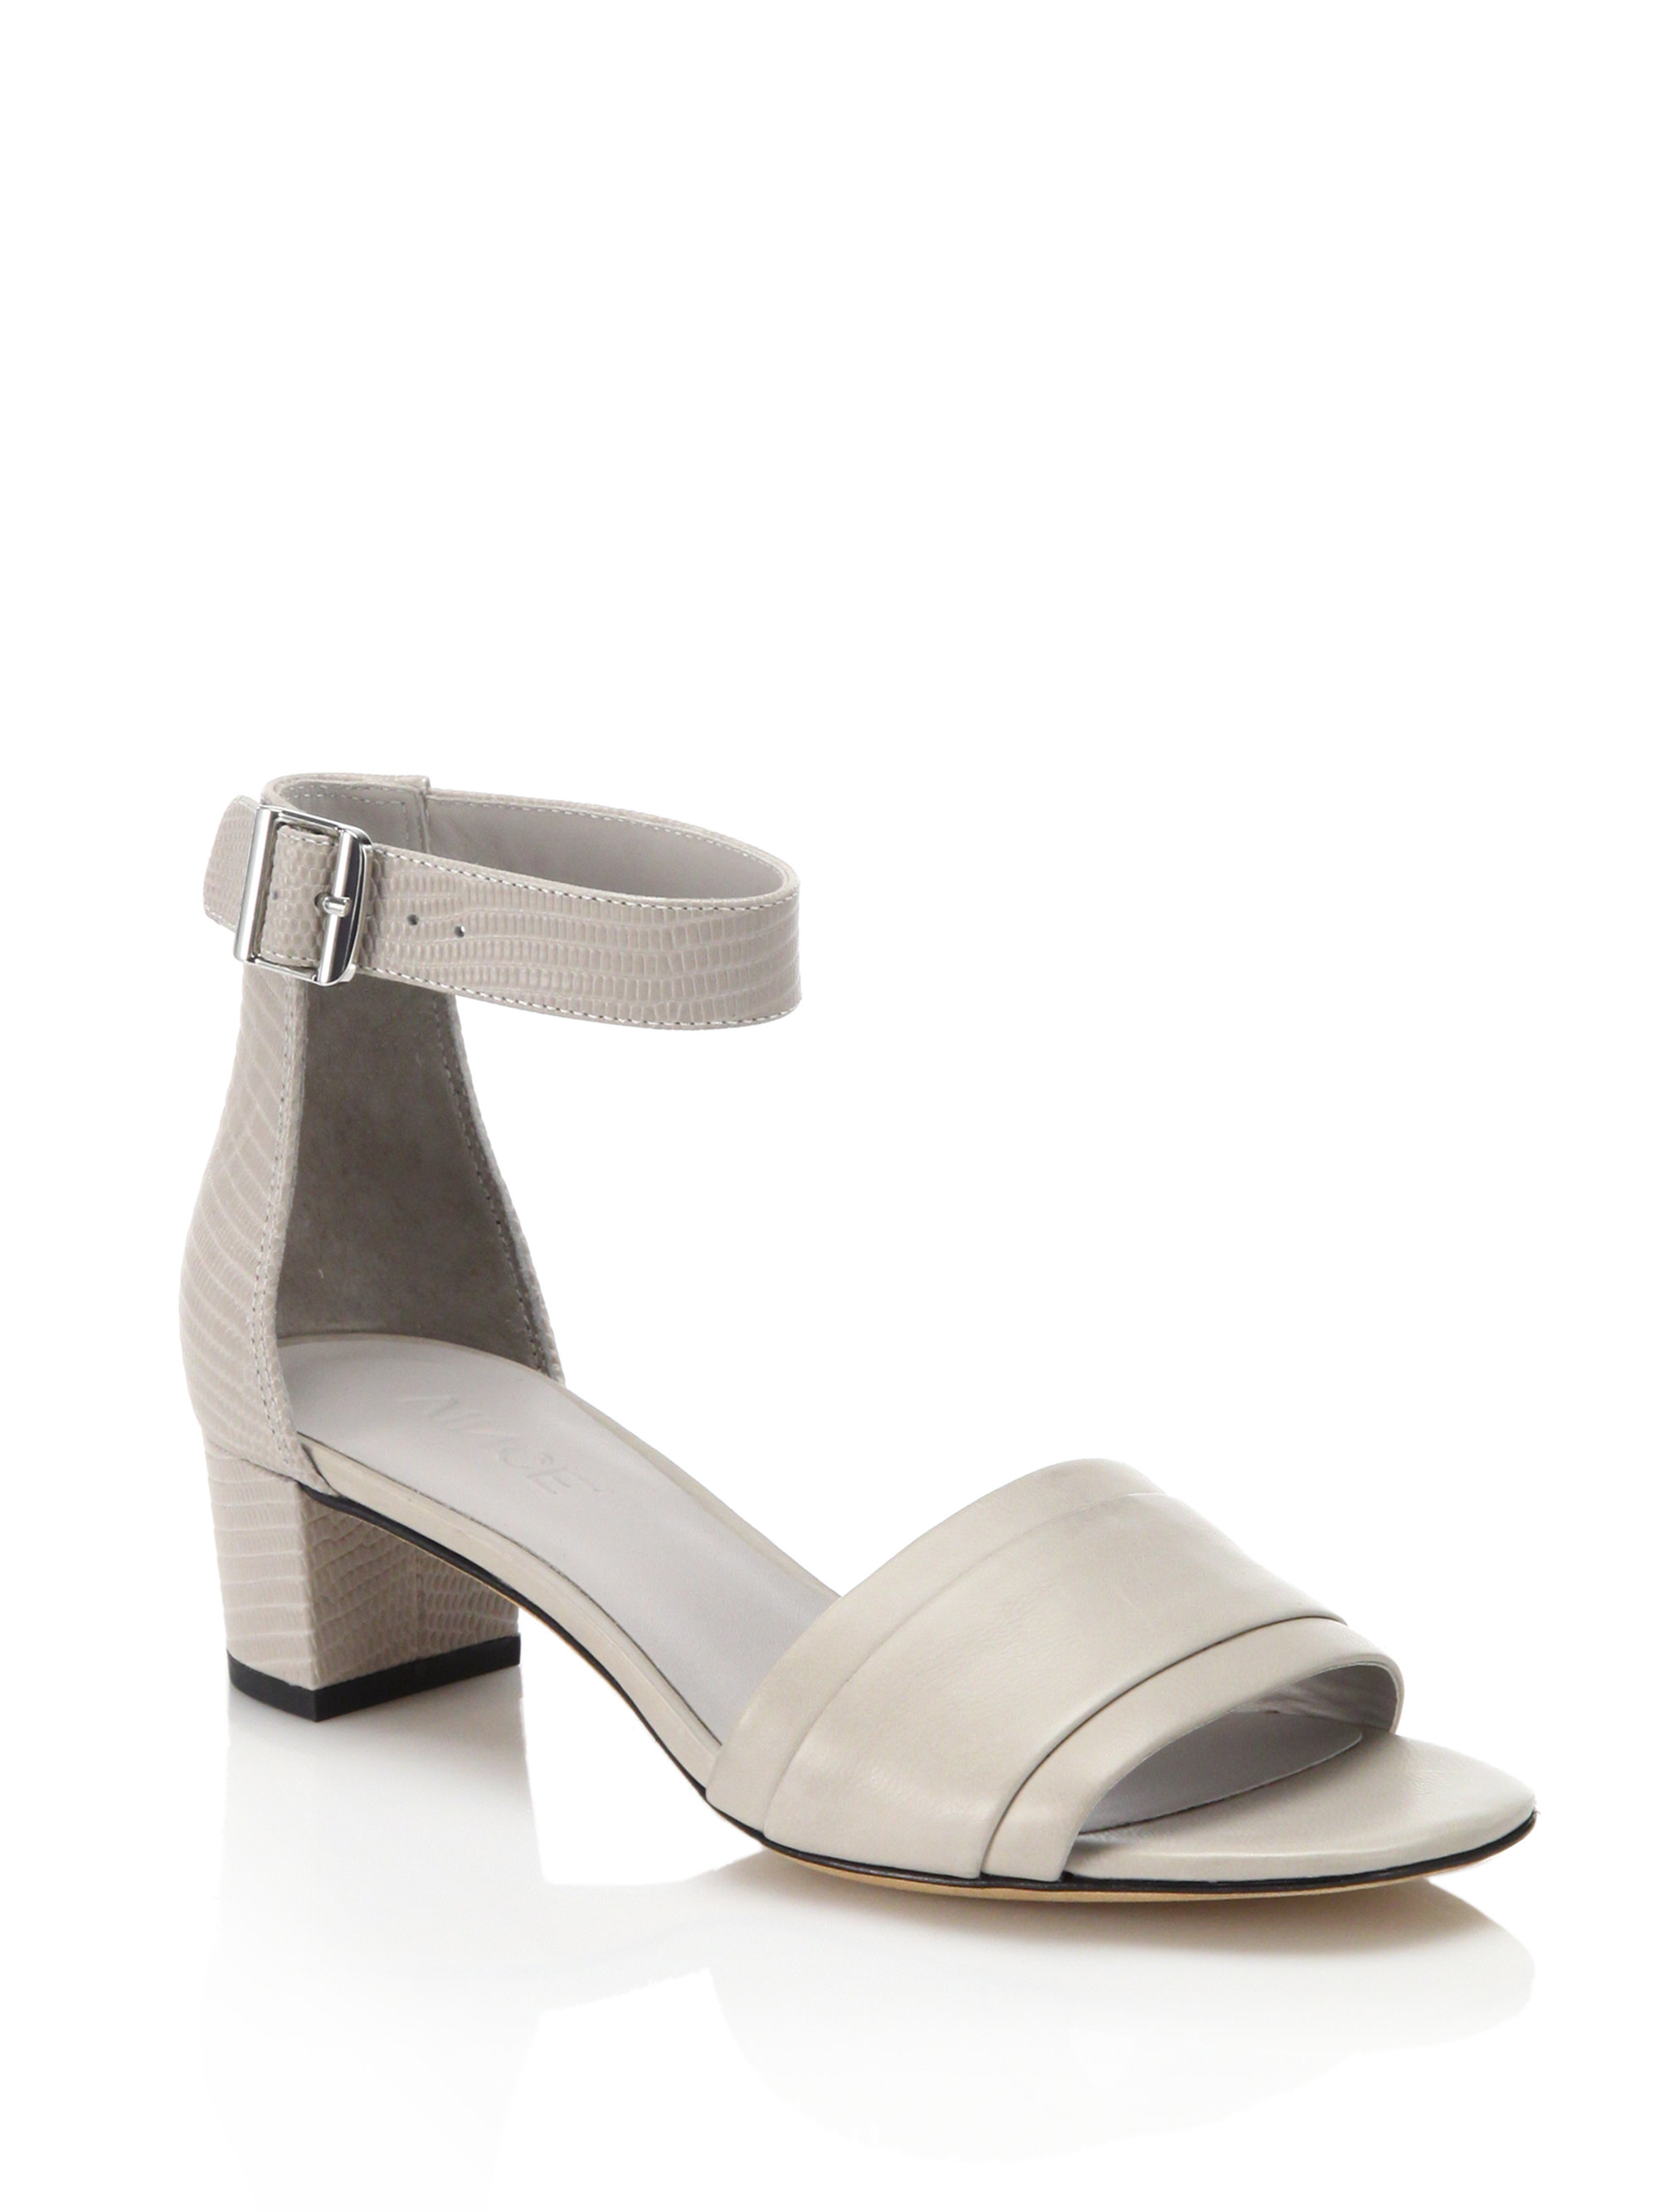 a68a3566c9 Vince Raine Leather Mid-heel Sandals in Gray - Lyst